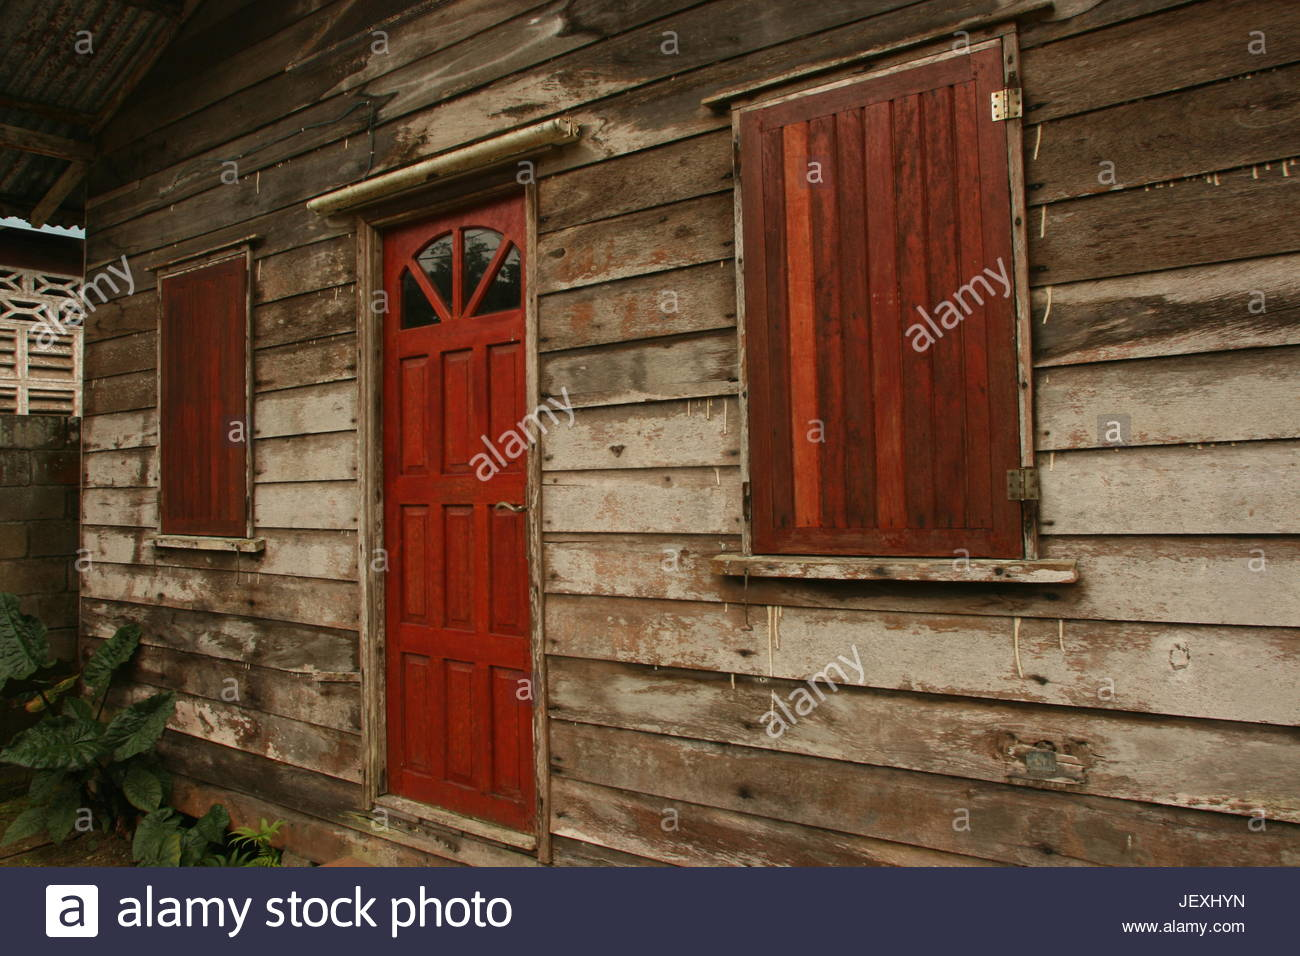 Traditional house in Paramaribo, Suriname. - Stock Image